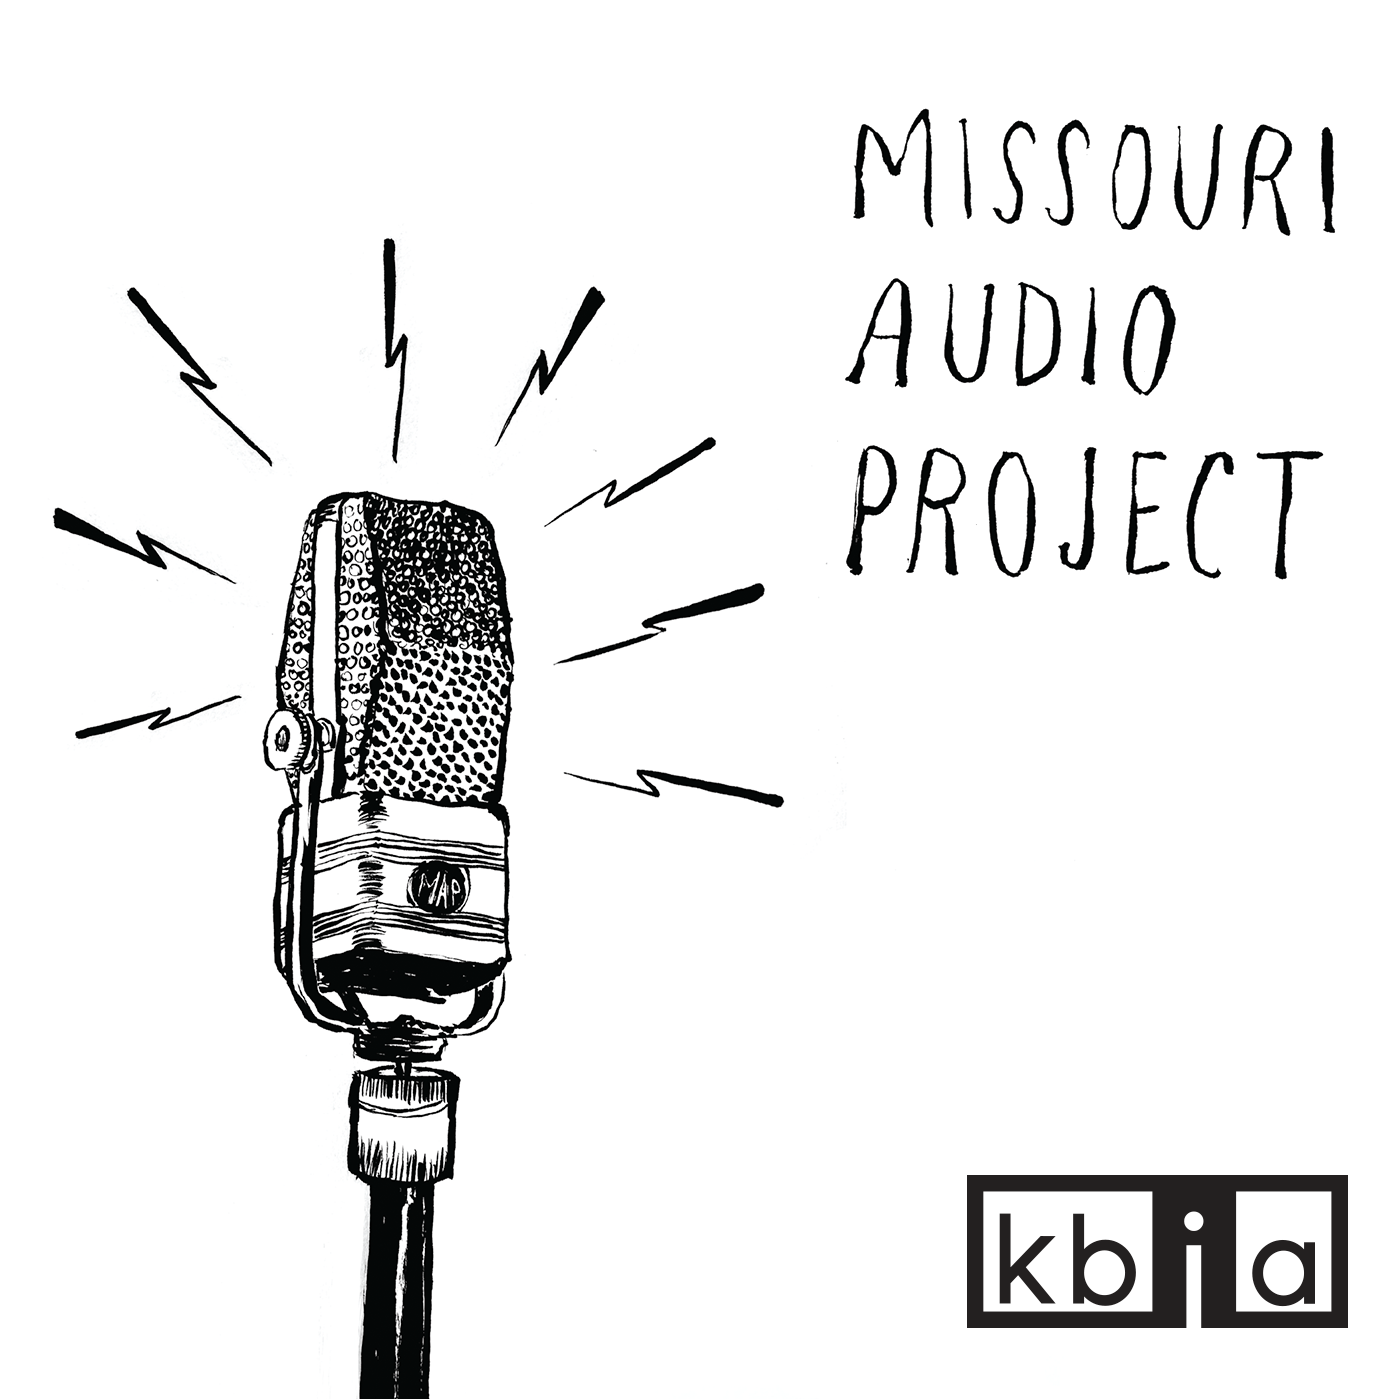 Missouri Audio Project